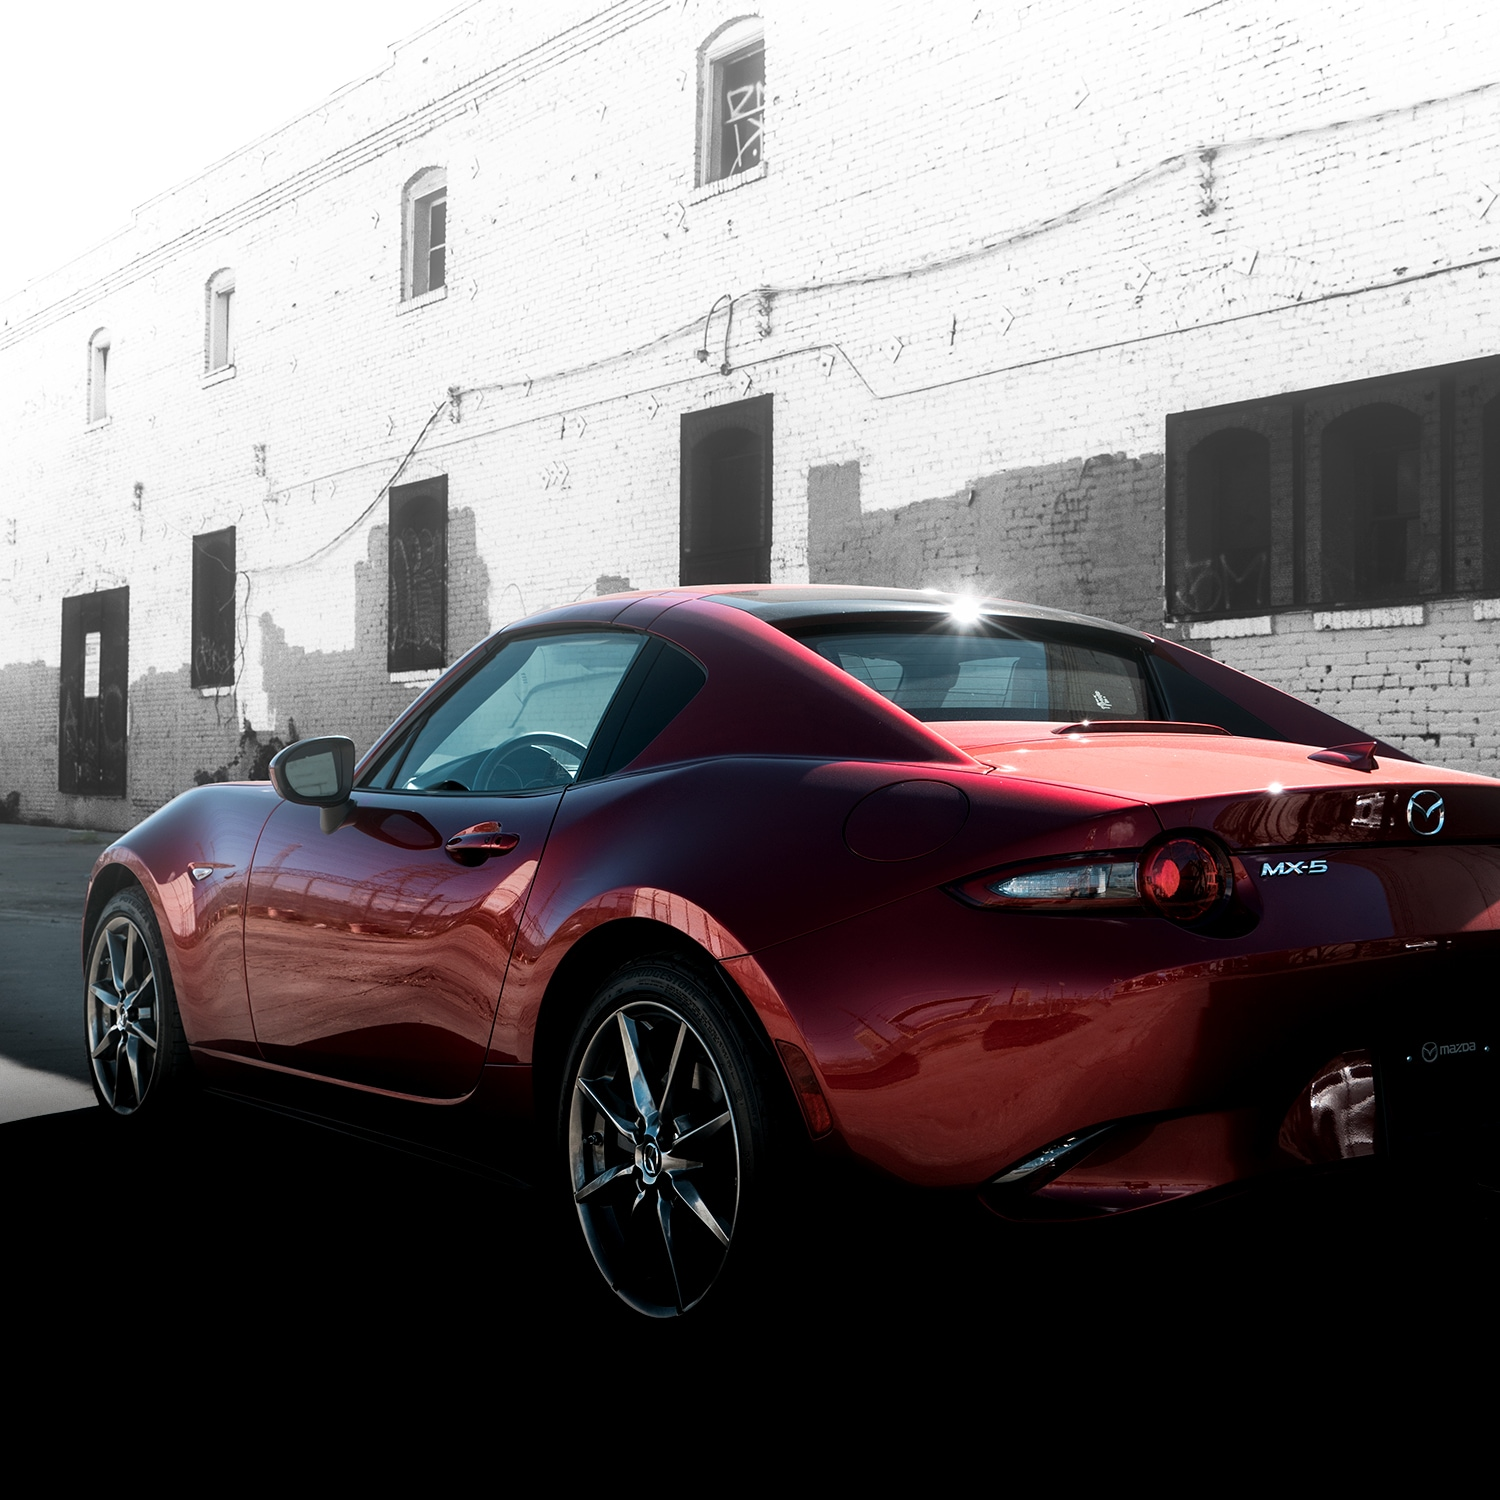 Jack Giambalvo Mazda is a Car Dealership near Lancaster PA | Rear view of 2020 Mazda Miata parked in alley